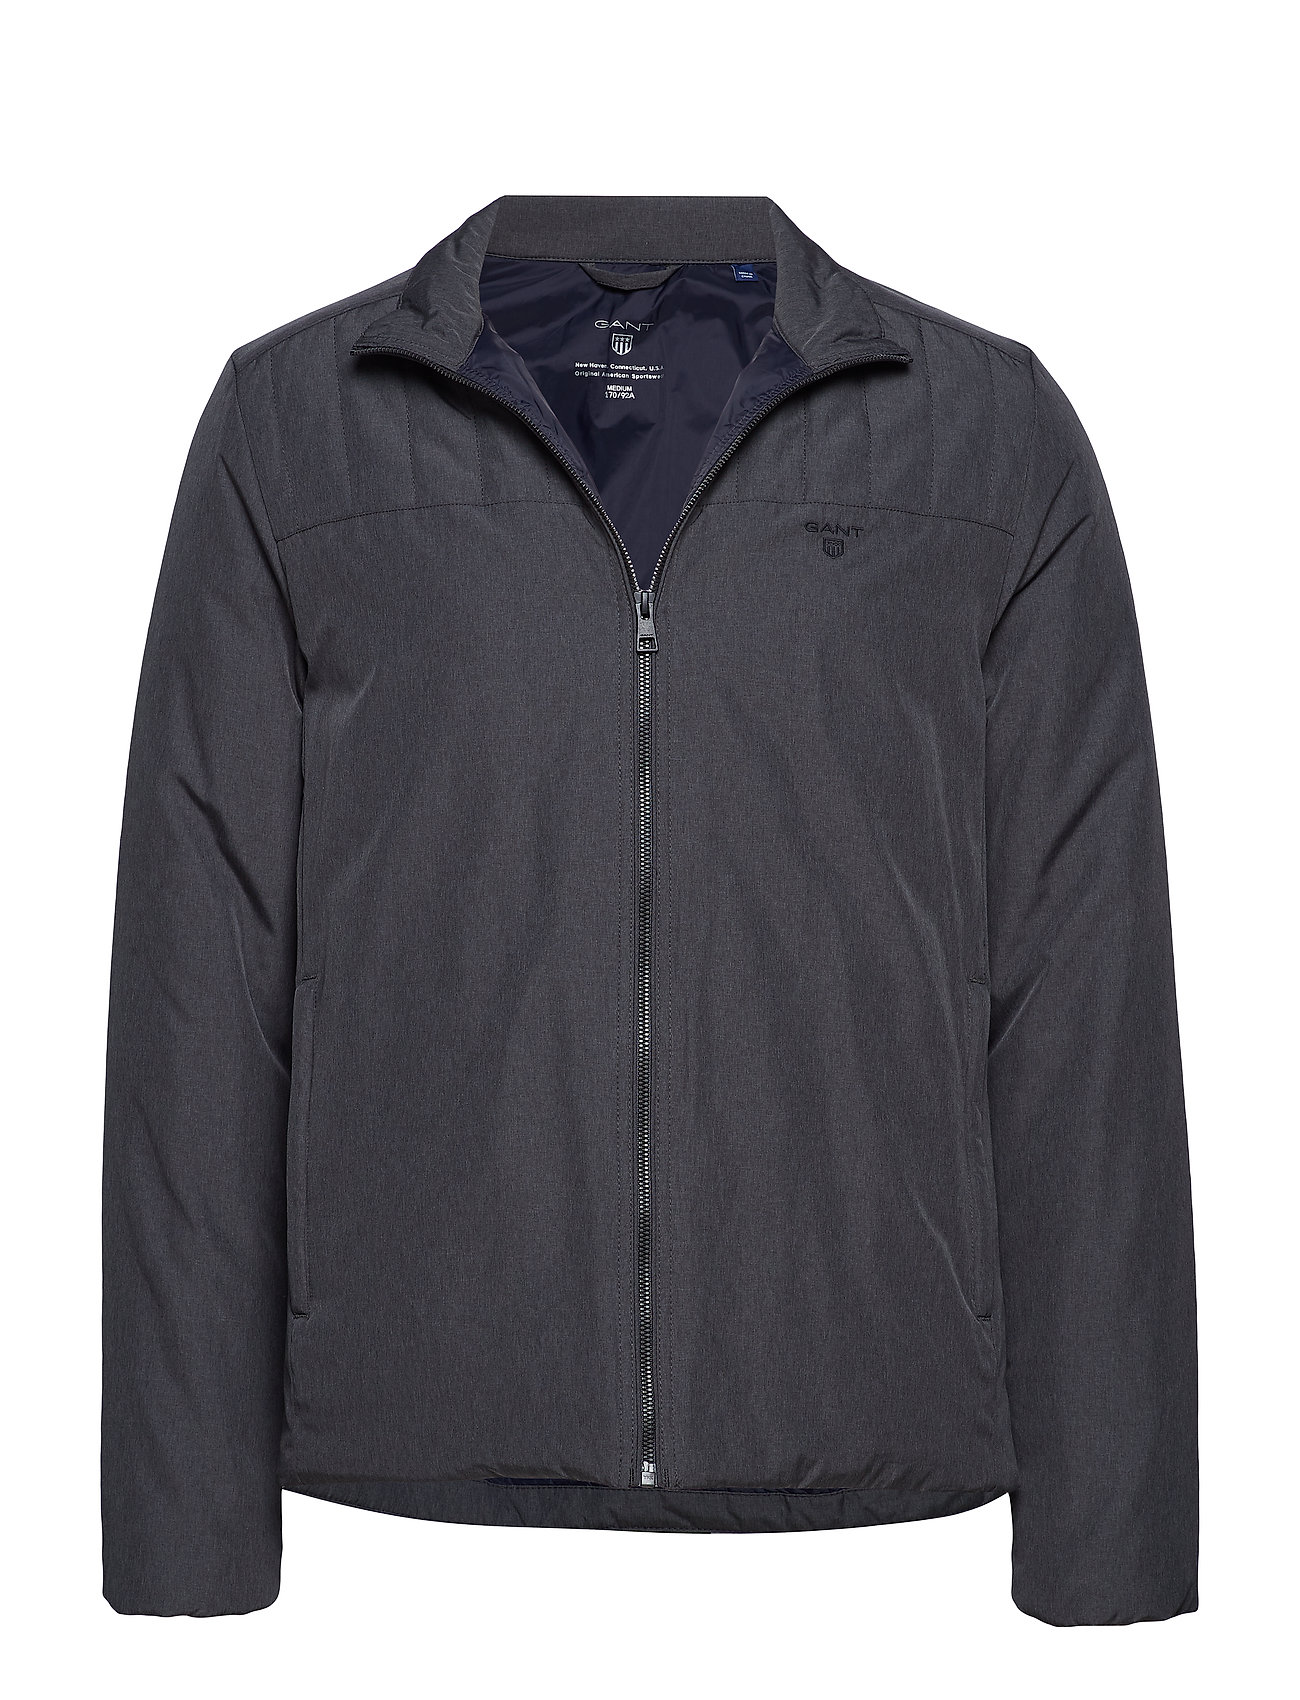 Gant O2. THE PADDED JACKET - CHARCOAL MELANGE